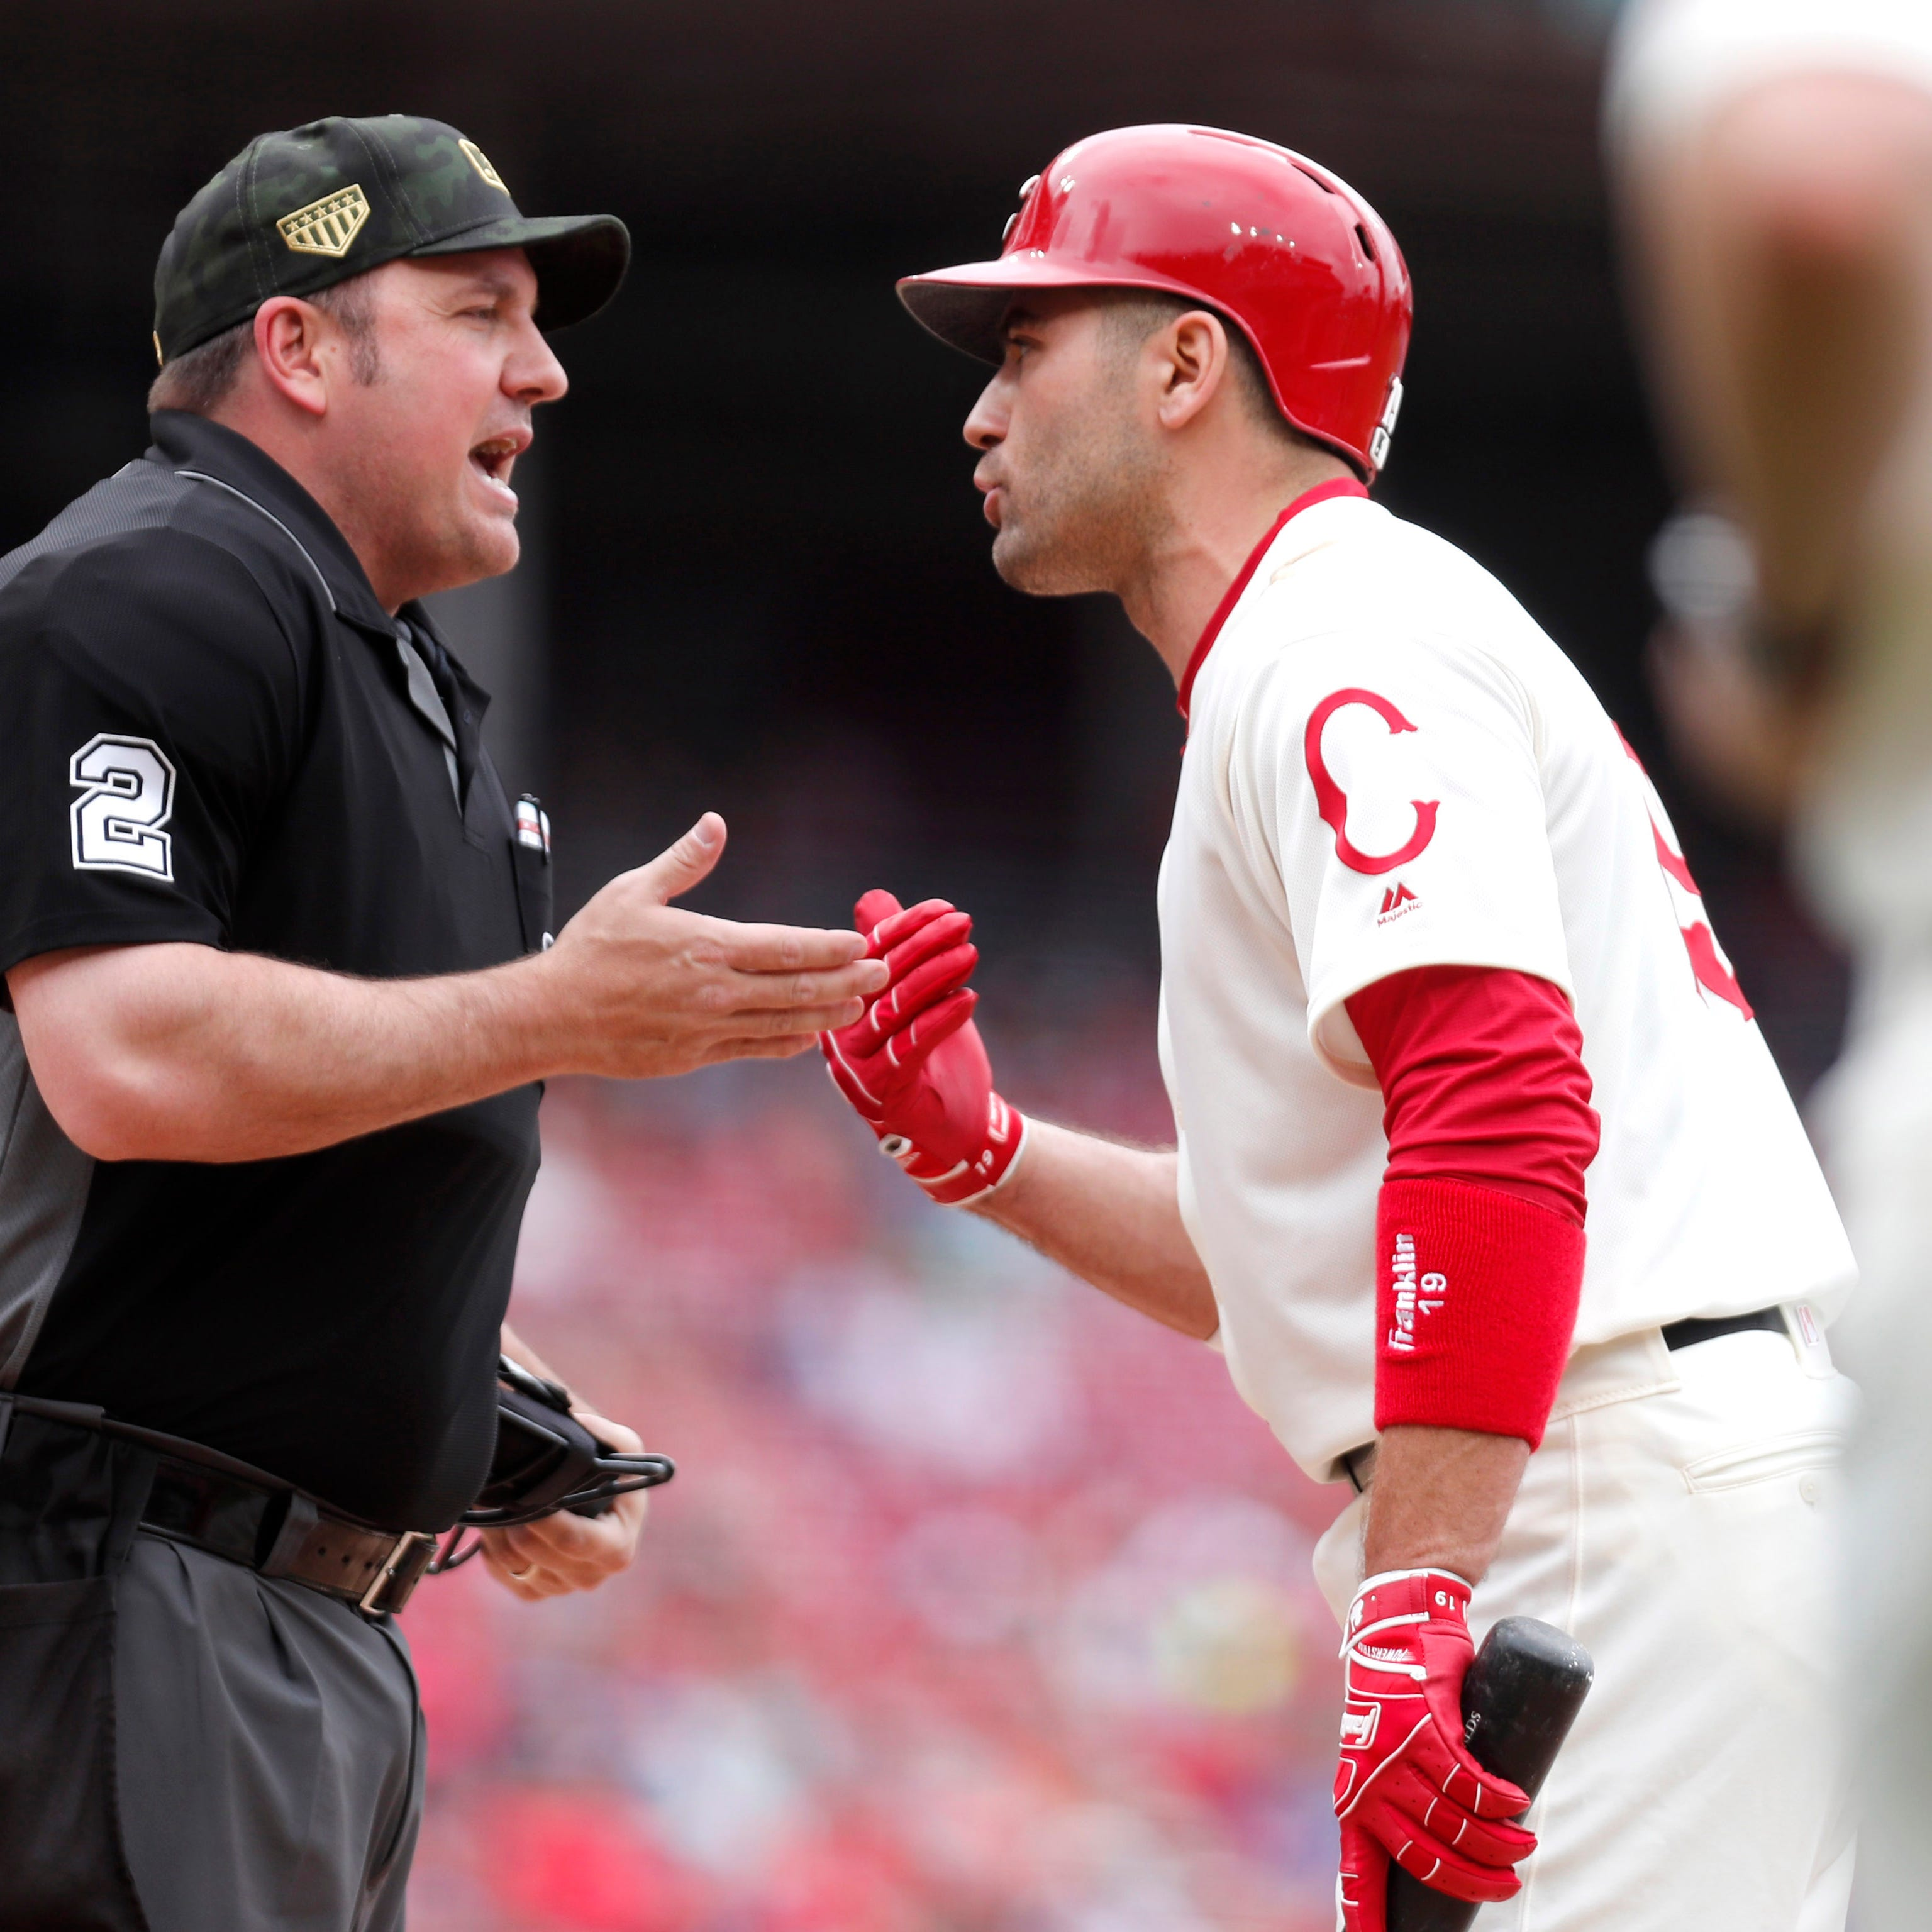 Paul Daugherty: Cincinnati Reds star Joey Votto will get things turned around, right?